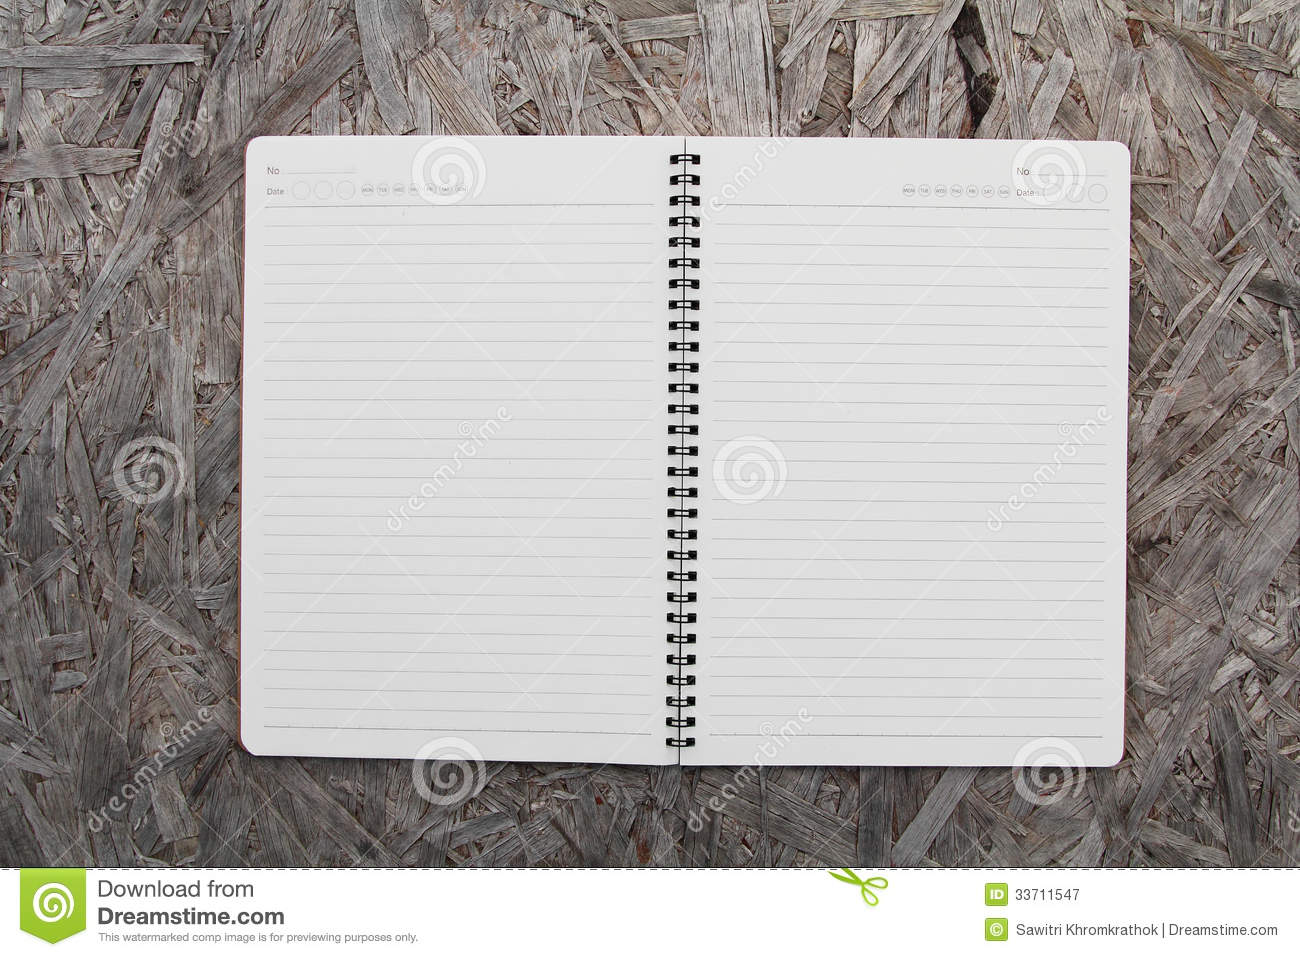 Notebook Paper On Wood Background Stock Image - Image of ...